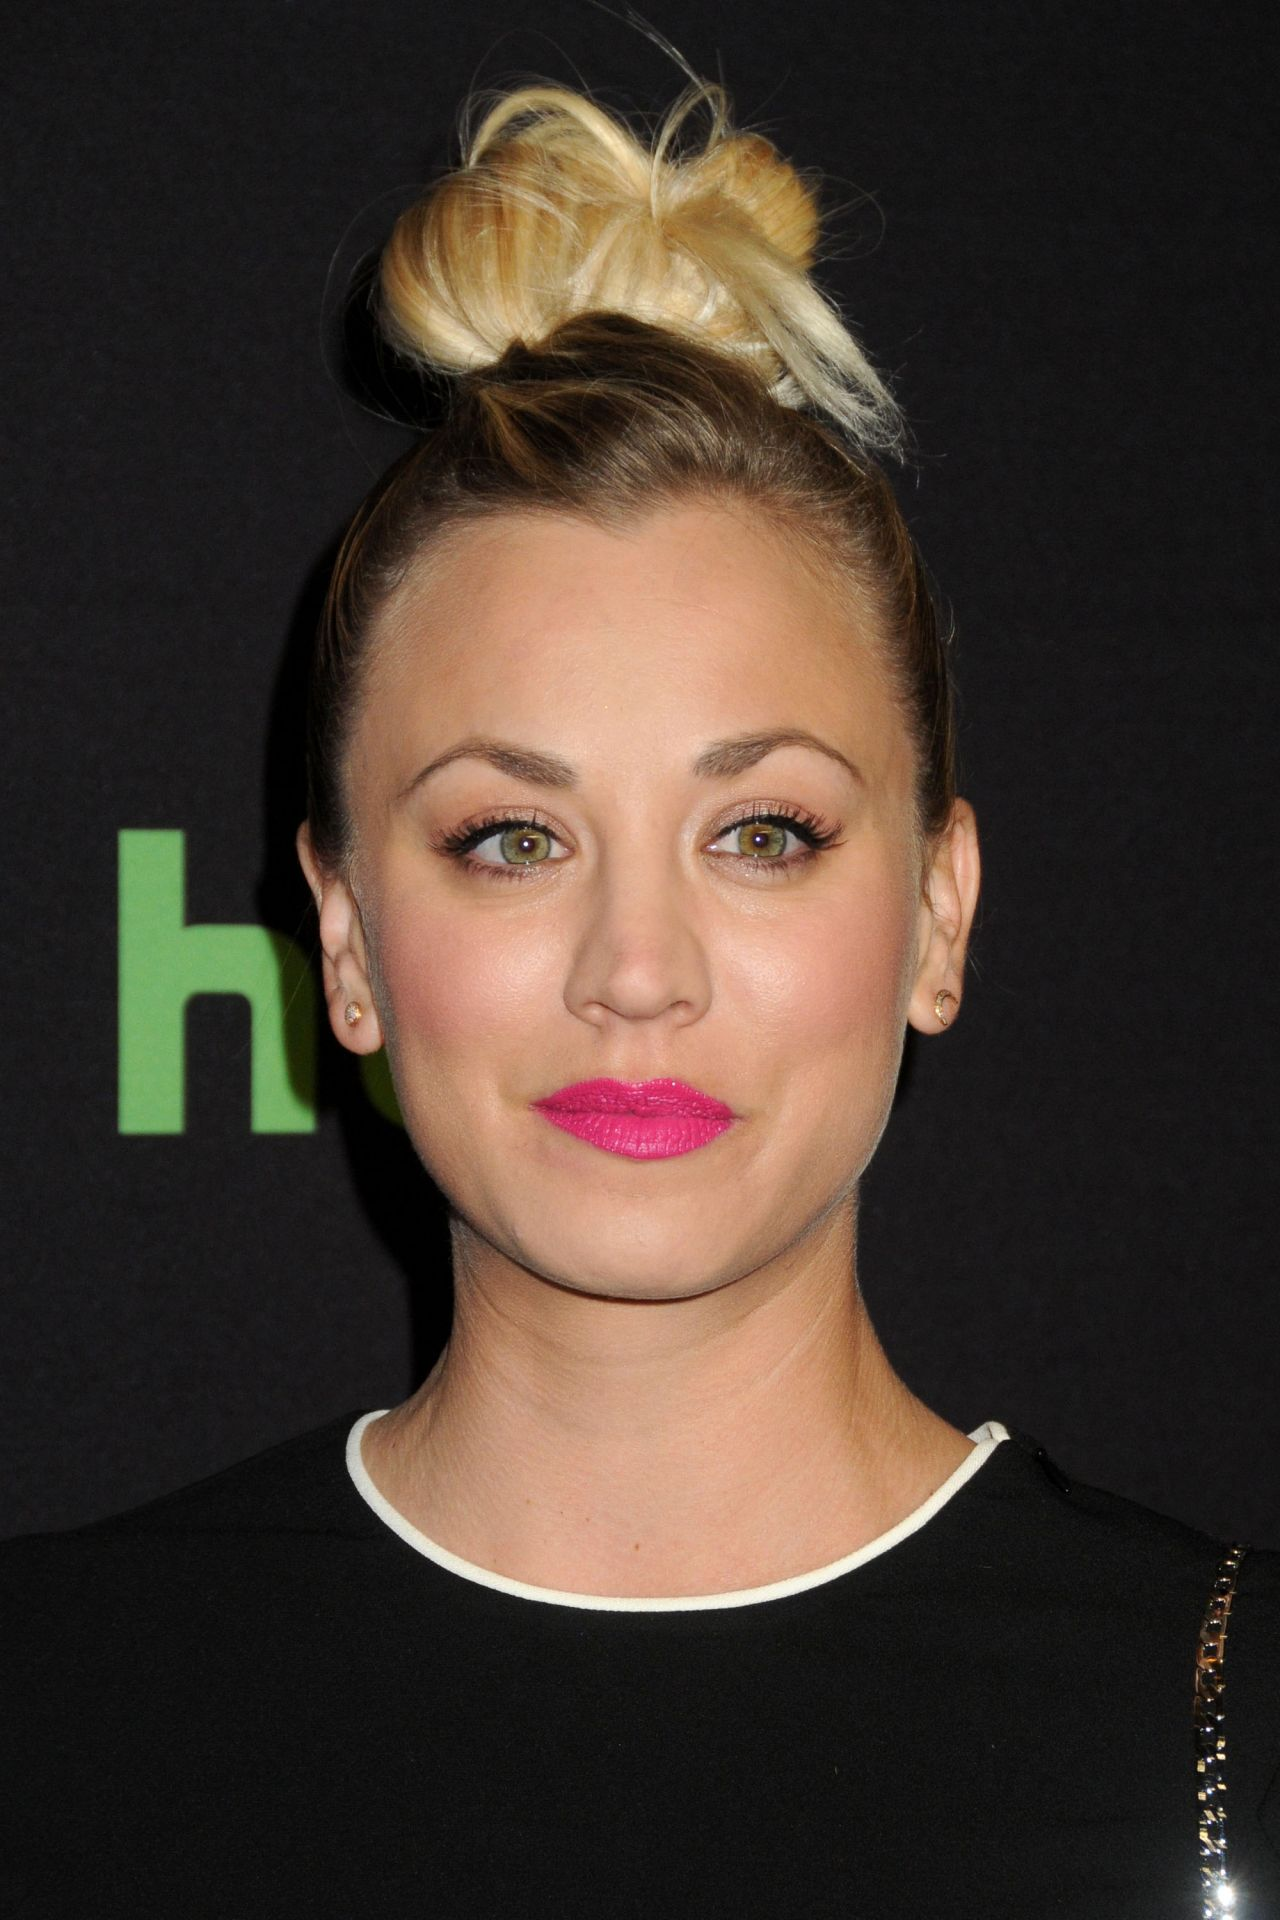 kaley-cuoco-33rd-annual-paleyfest-the-big-bang-theory-hollywood-3-16-2016-1